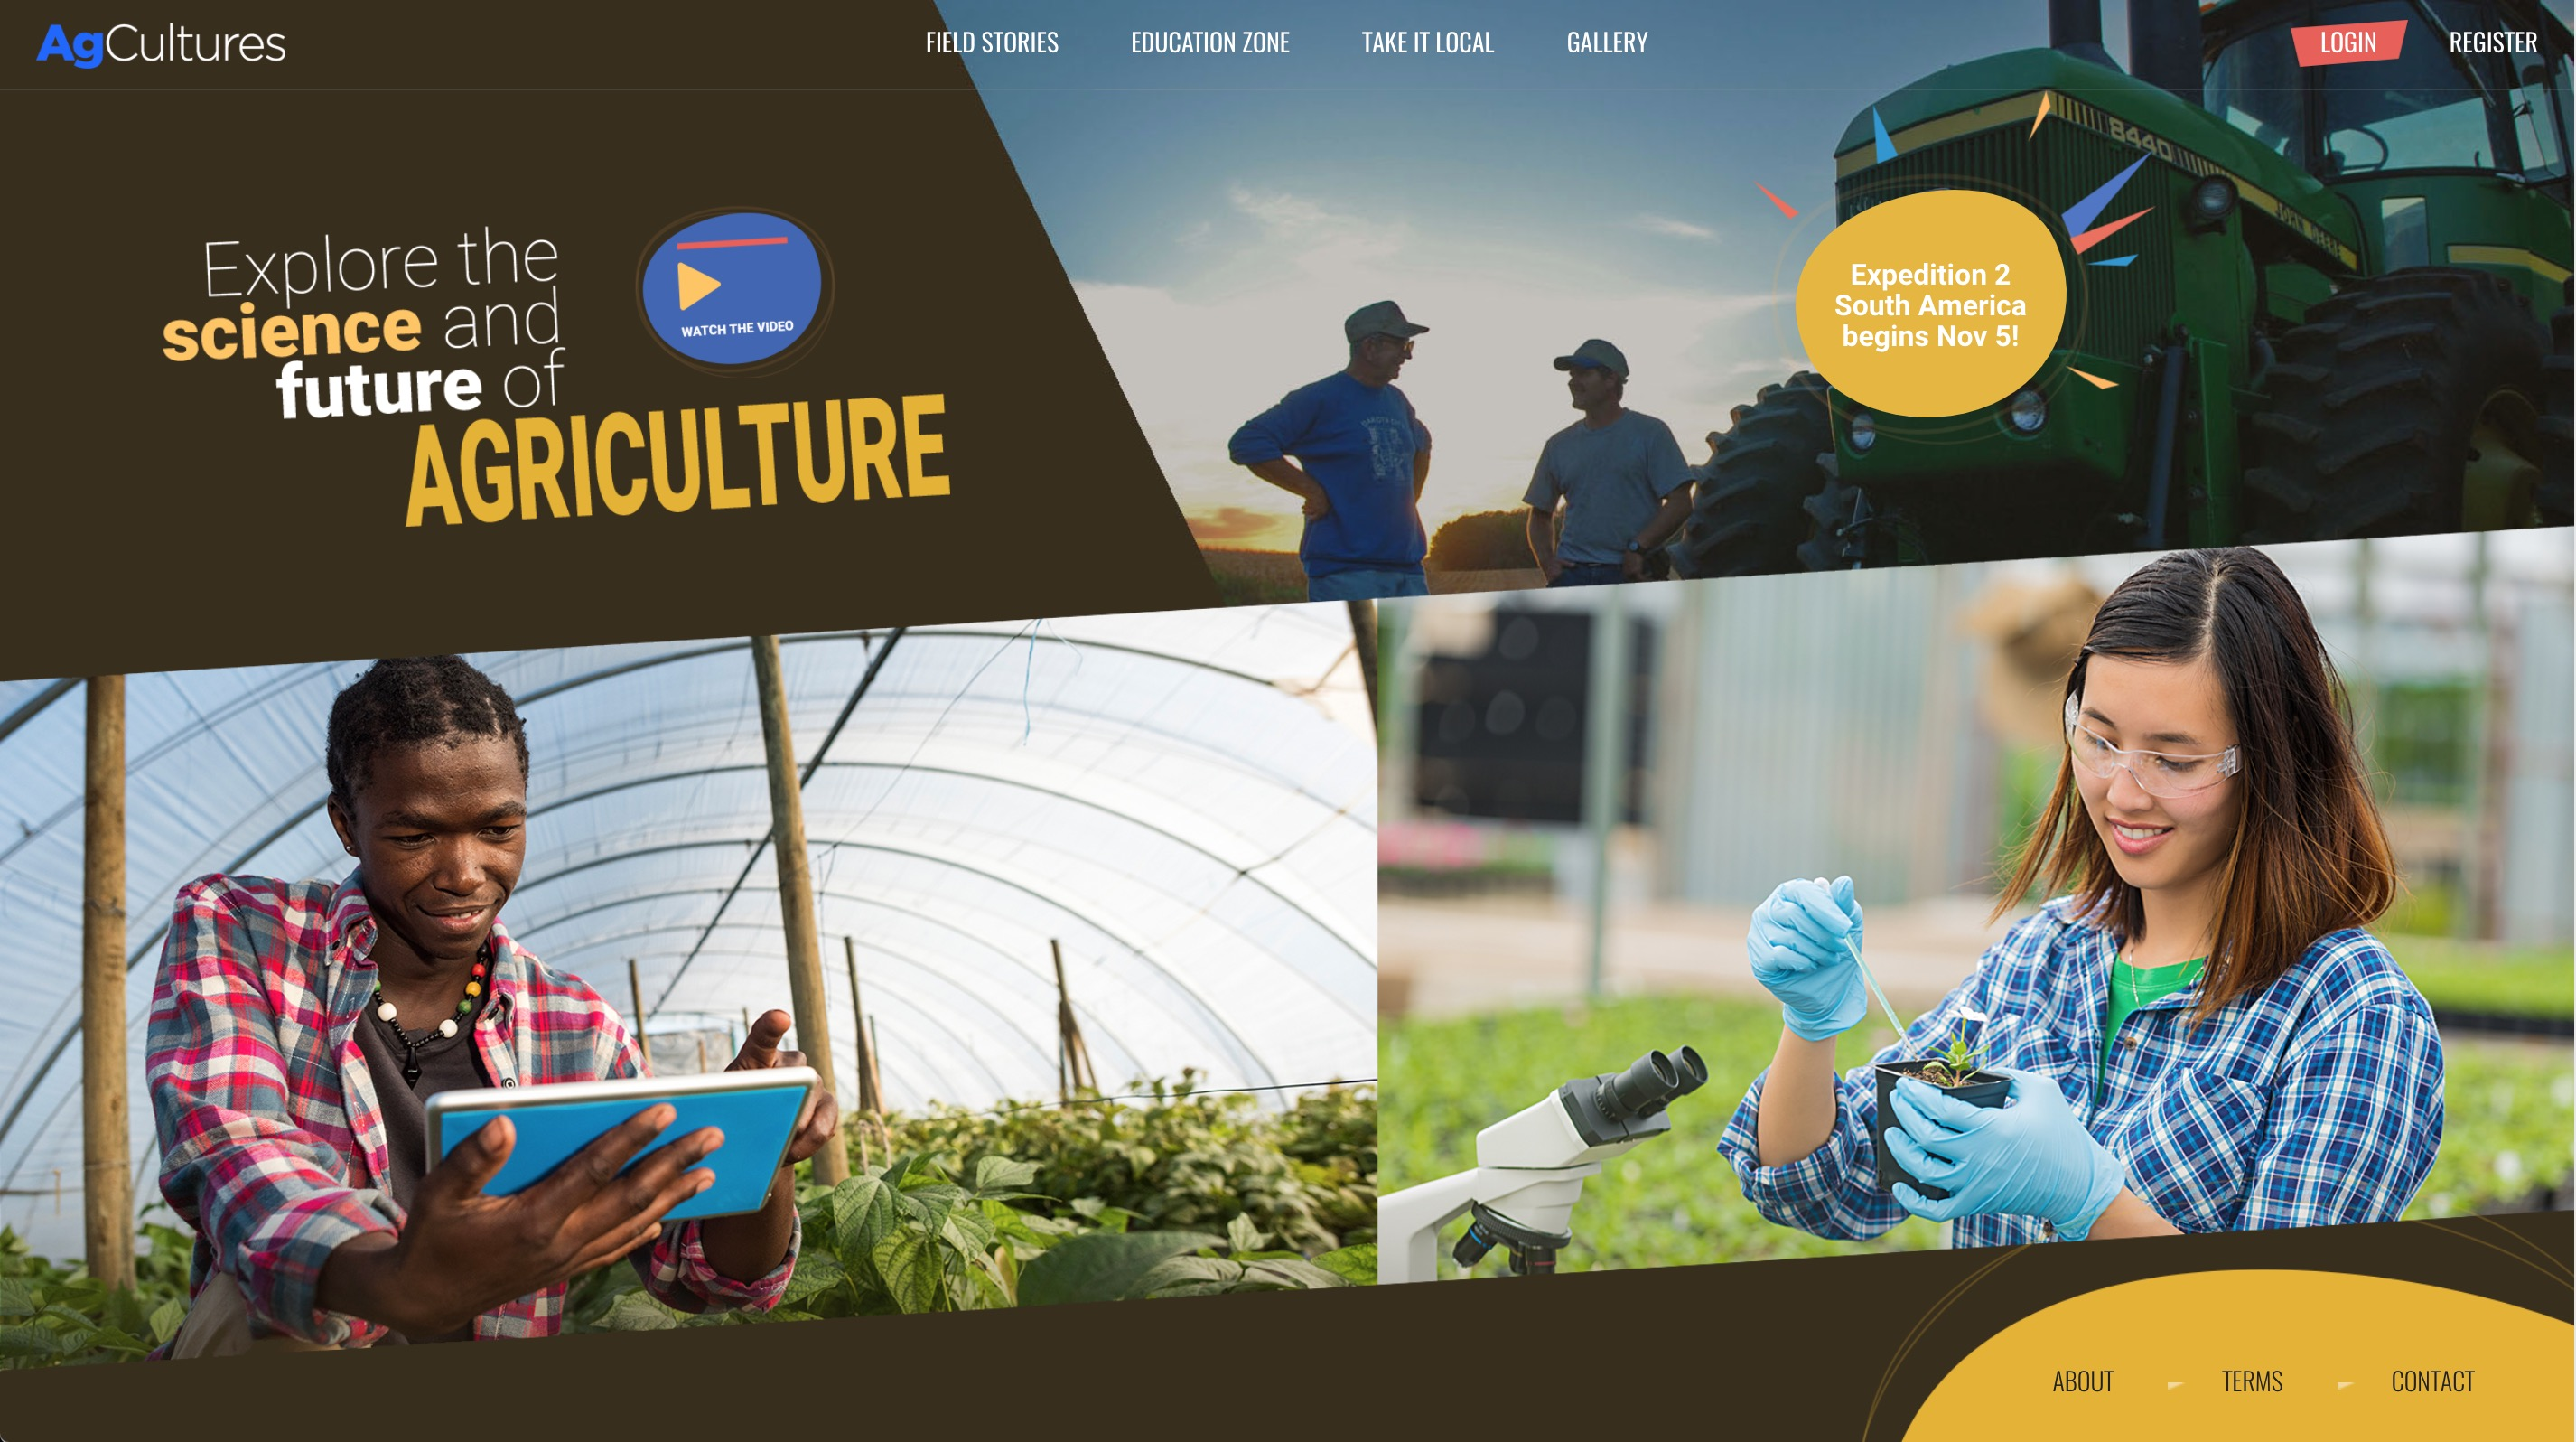 AgCultures homepage